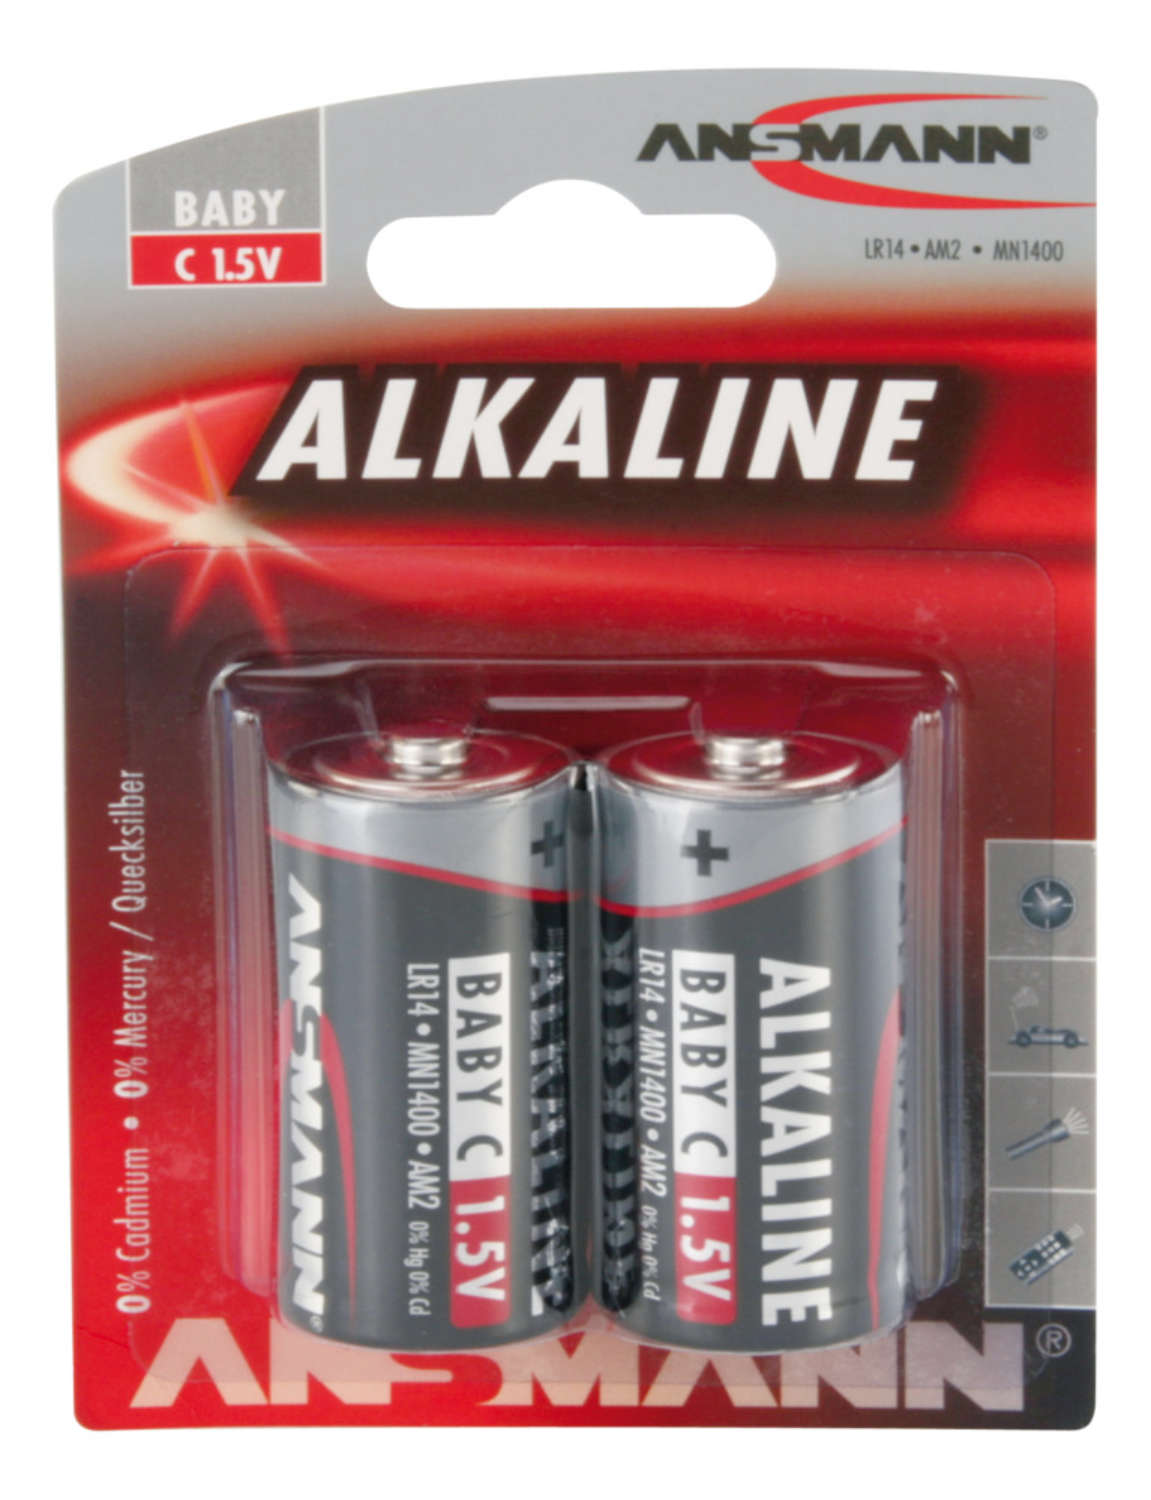 ANSMANN Baby - C size - Pack of 2,Non - Rechargeable Batteries,Red Line Alkaline Range